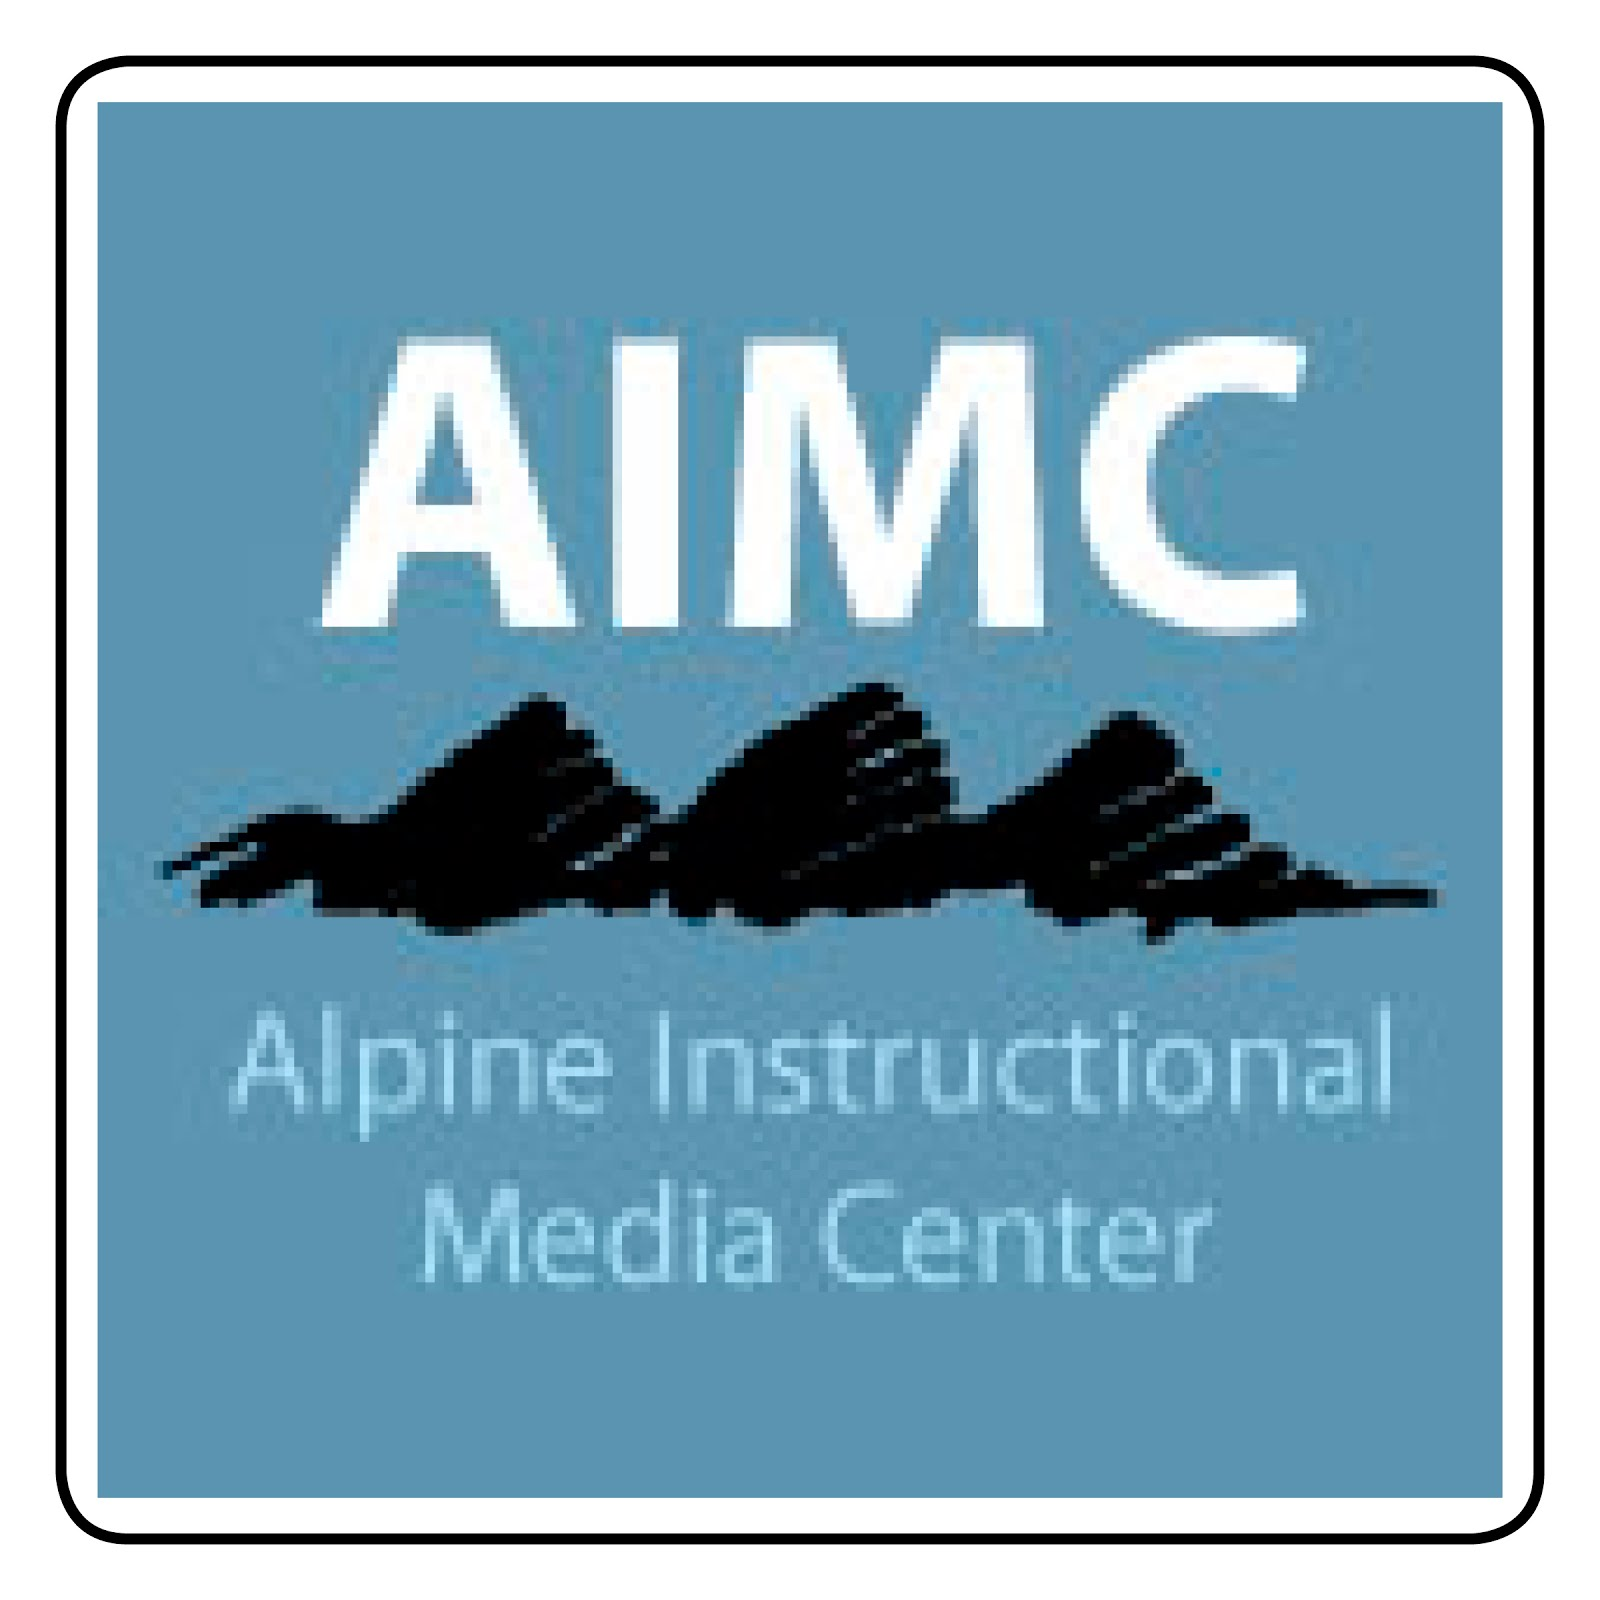 Alpine Instructional Media Center